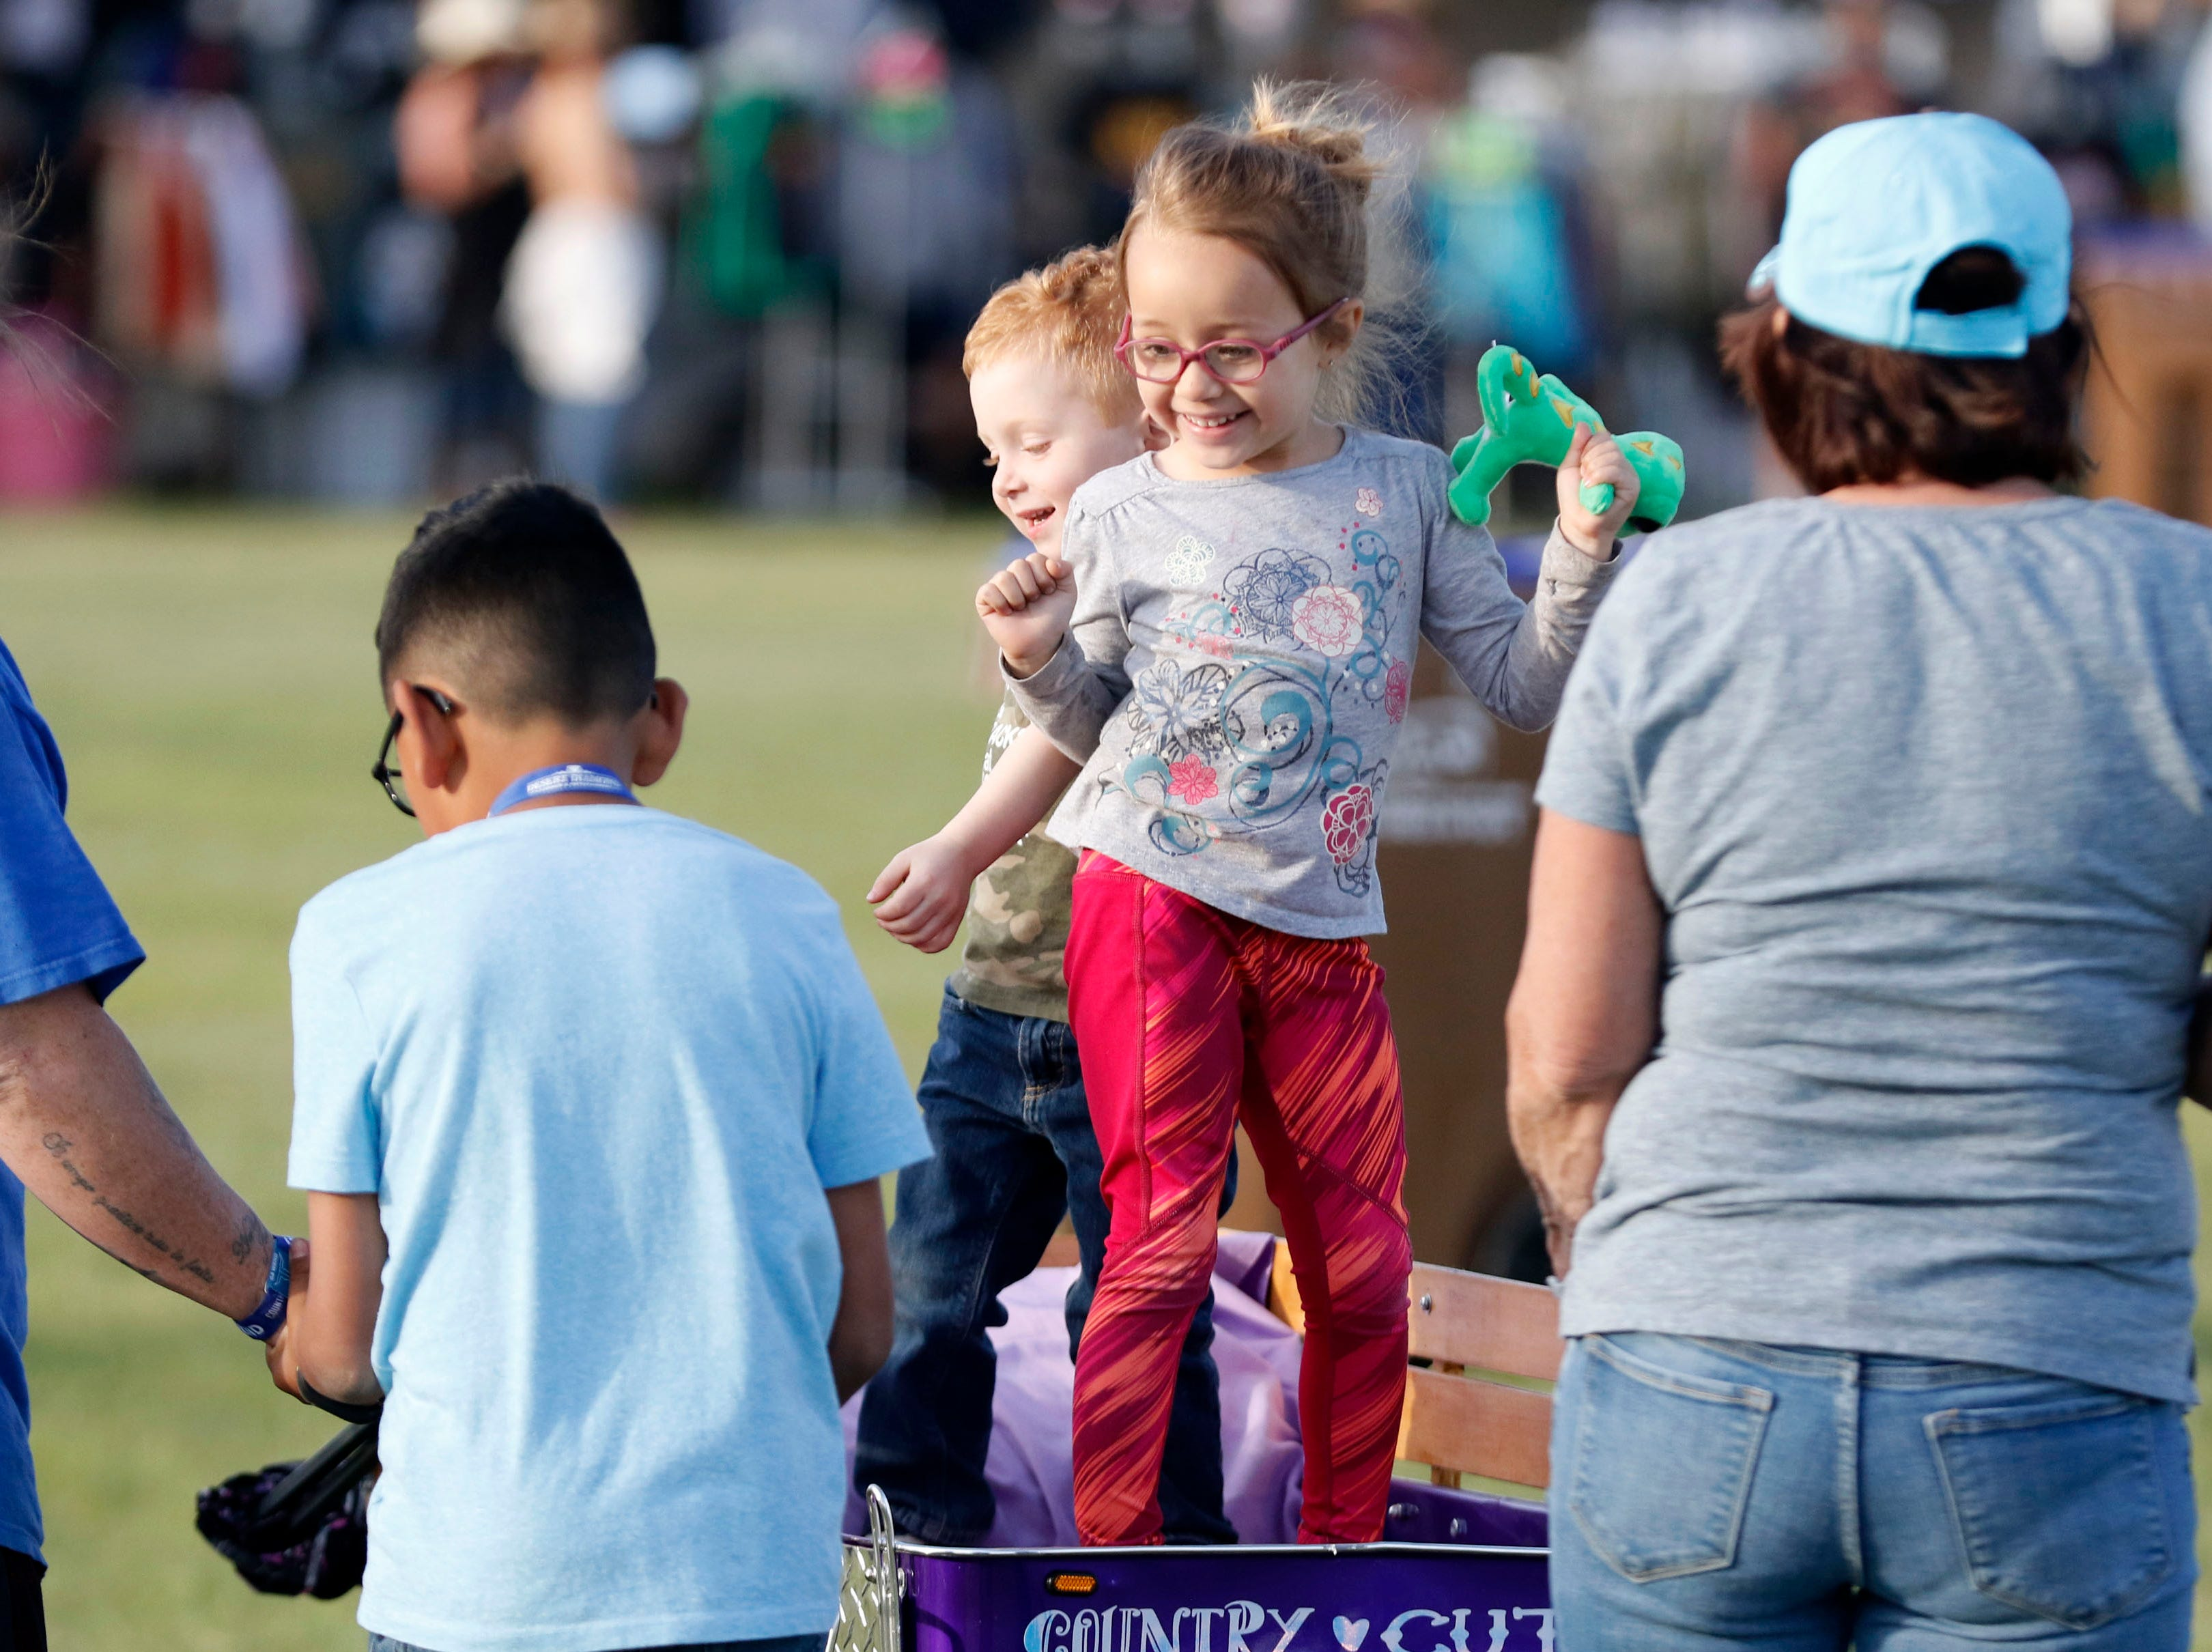 Calliope Finsad 4, of Tucson dances with her little brother Robert during Country Thunder Arizona on April 11, 2019, in Florence, Arizona.